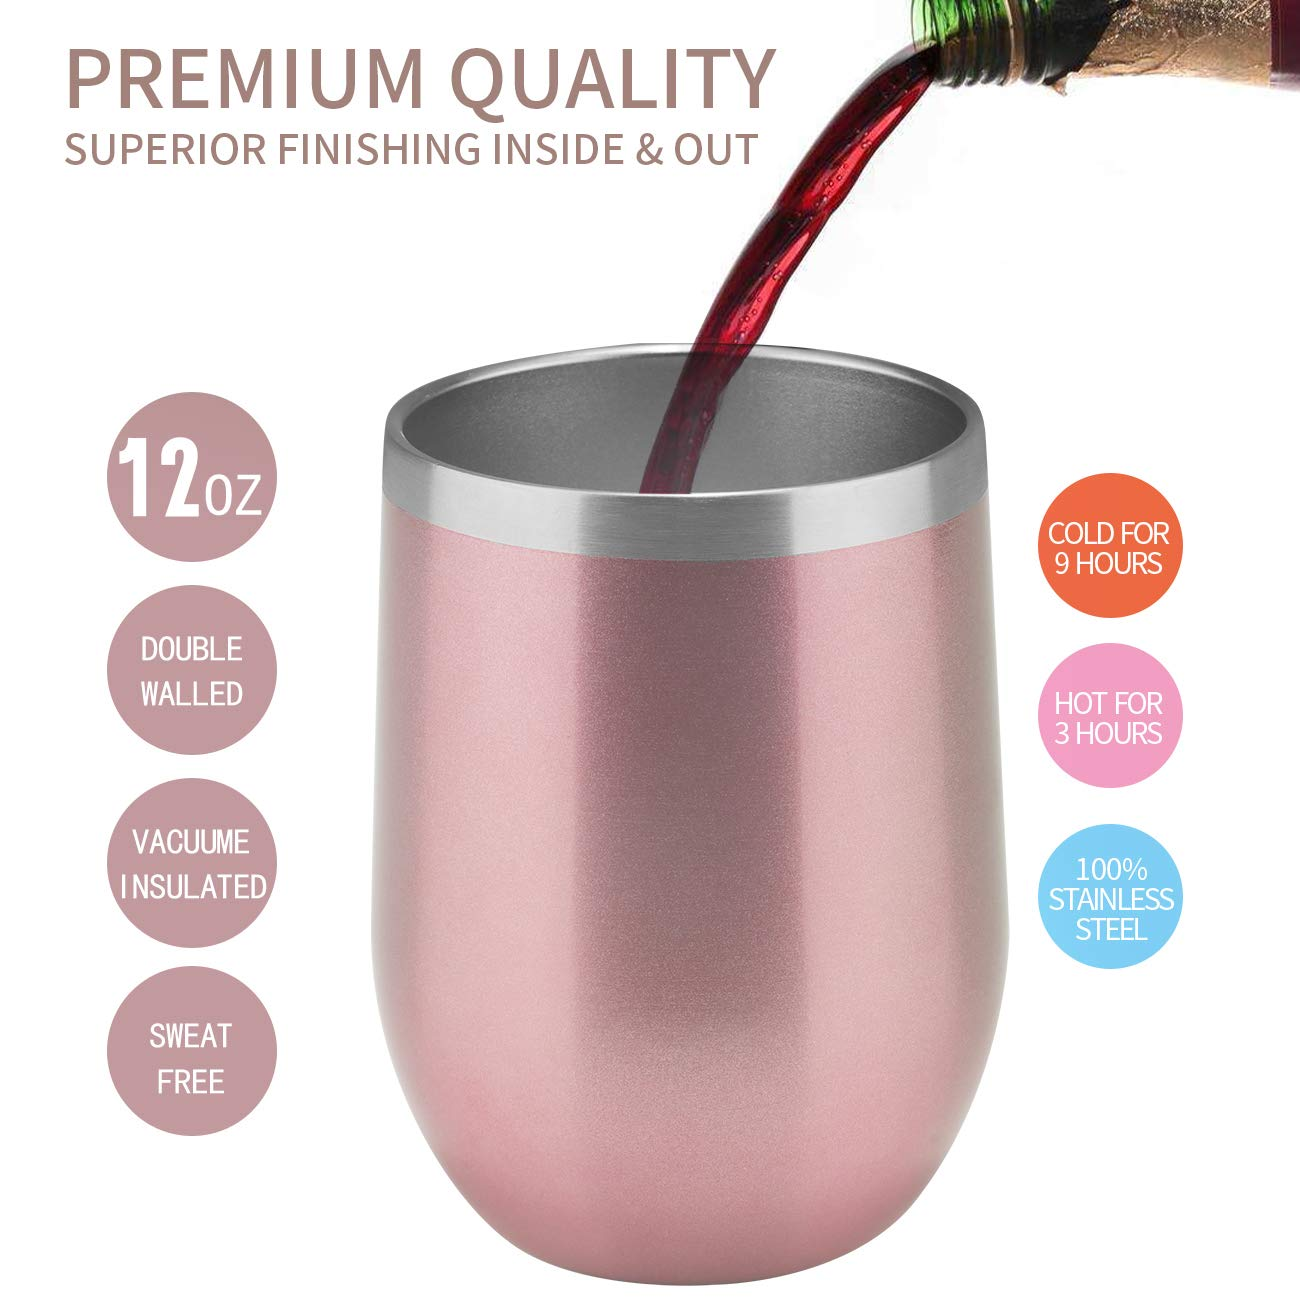 12oz Insulated Cooling Cups,12-Pack, Wine Tumbler with Lid, Stemless Stainless Steel Insulated Wine Glass Double Wall Durable Coffee Mug, for Champaign, Cocktail, Beer, Office use by MUCHENG (Image #5)